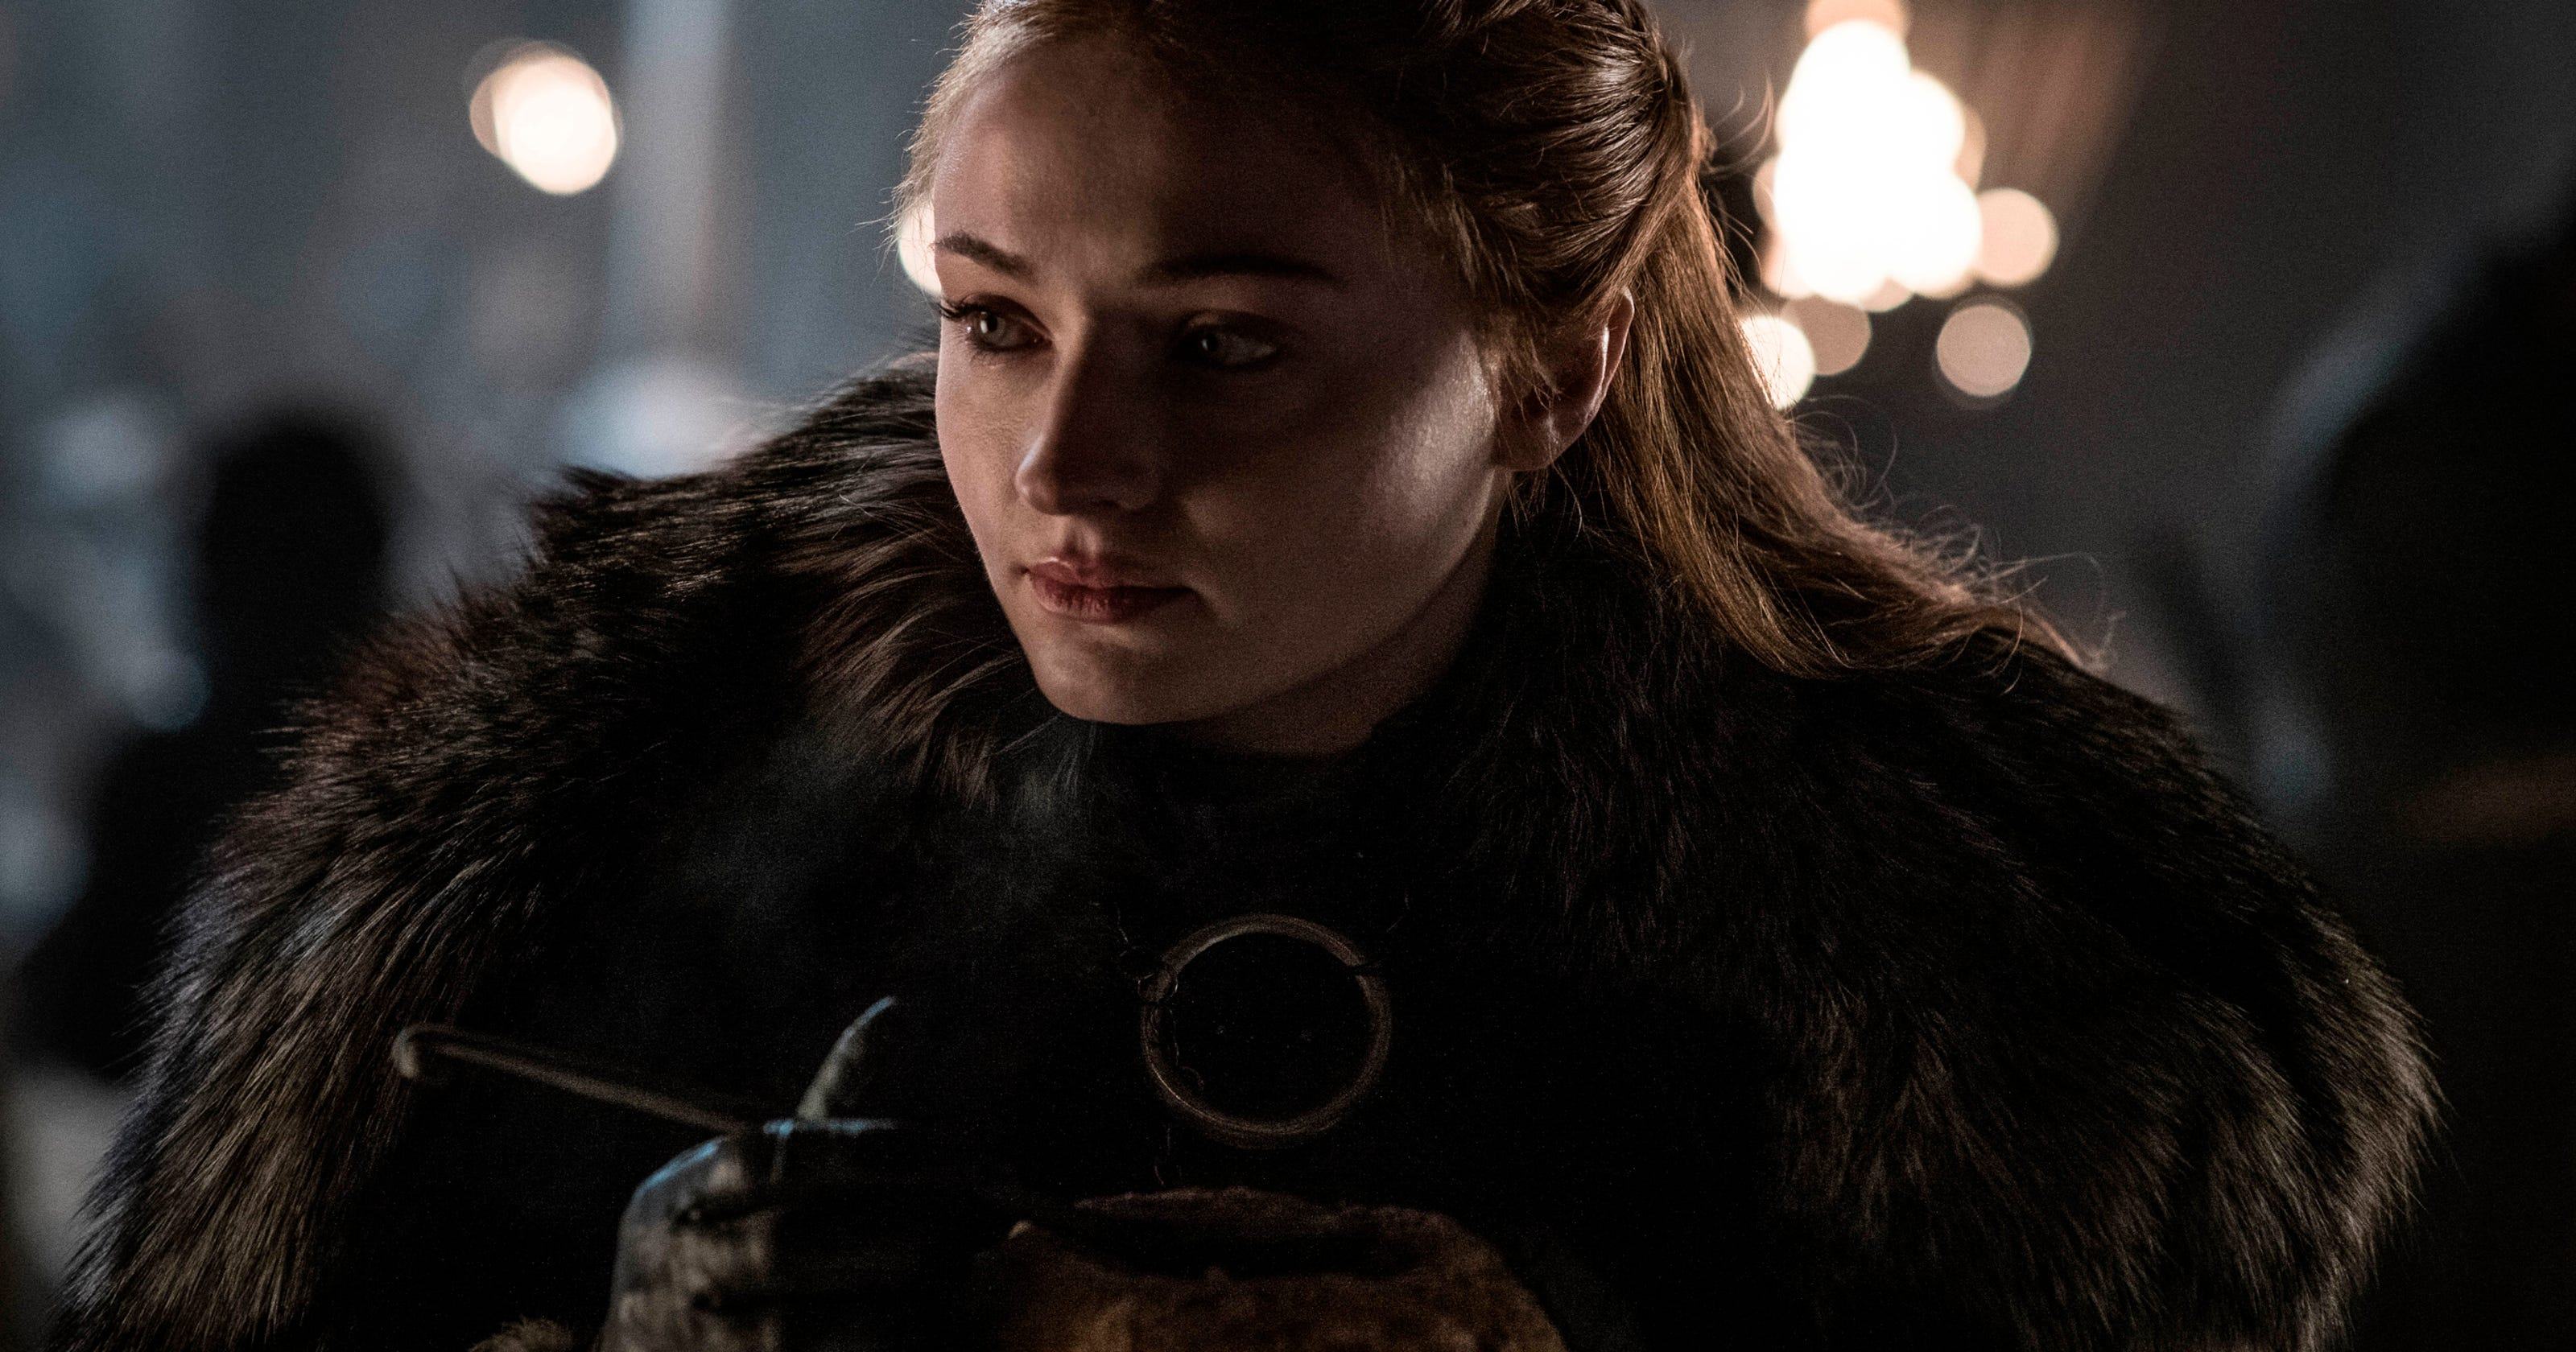 40cda981 'Game of the Thrones': Why it's defining pop culture for millennials